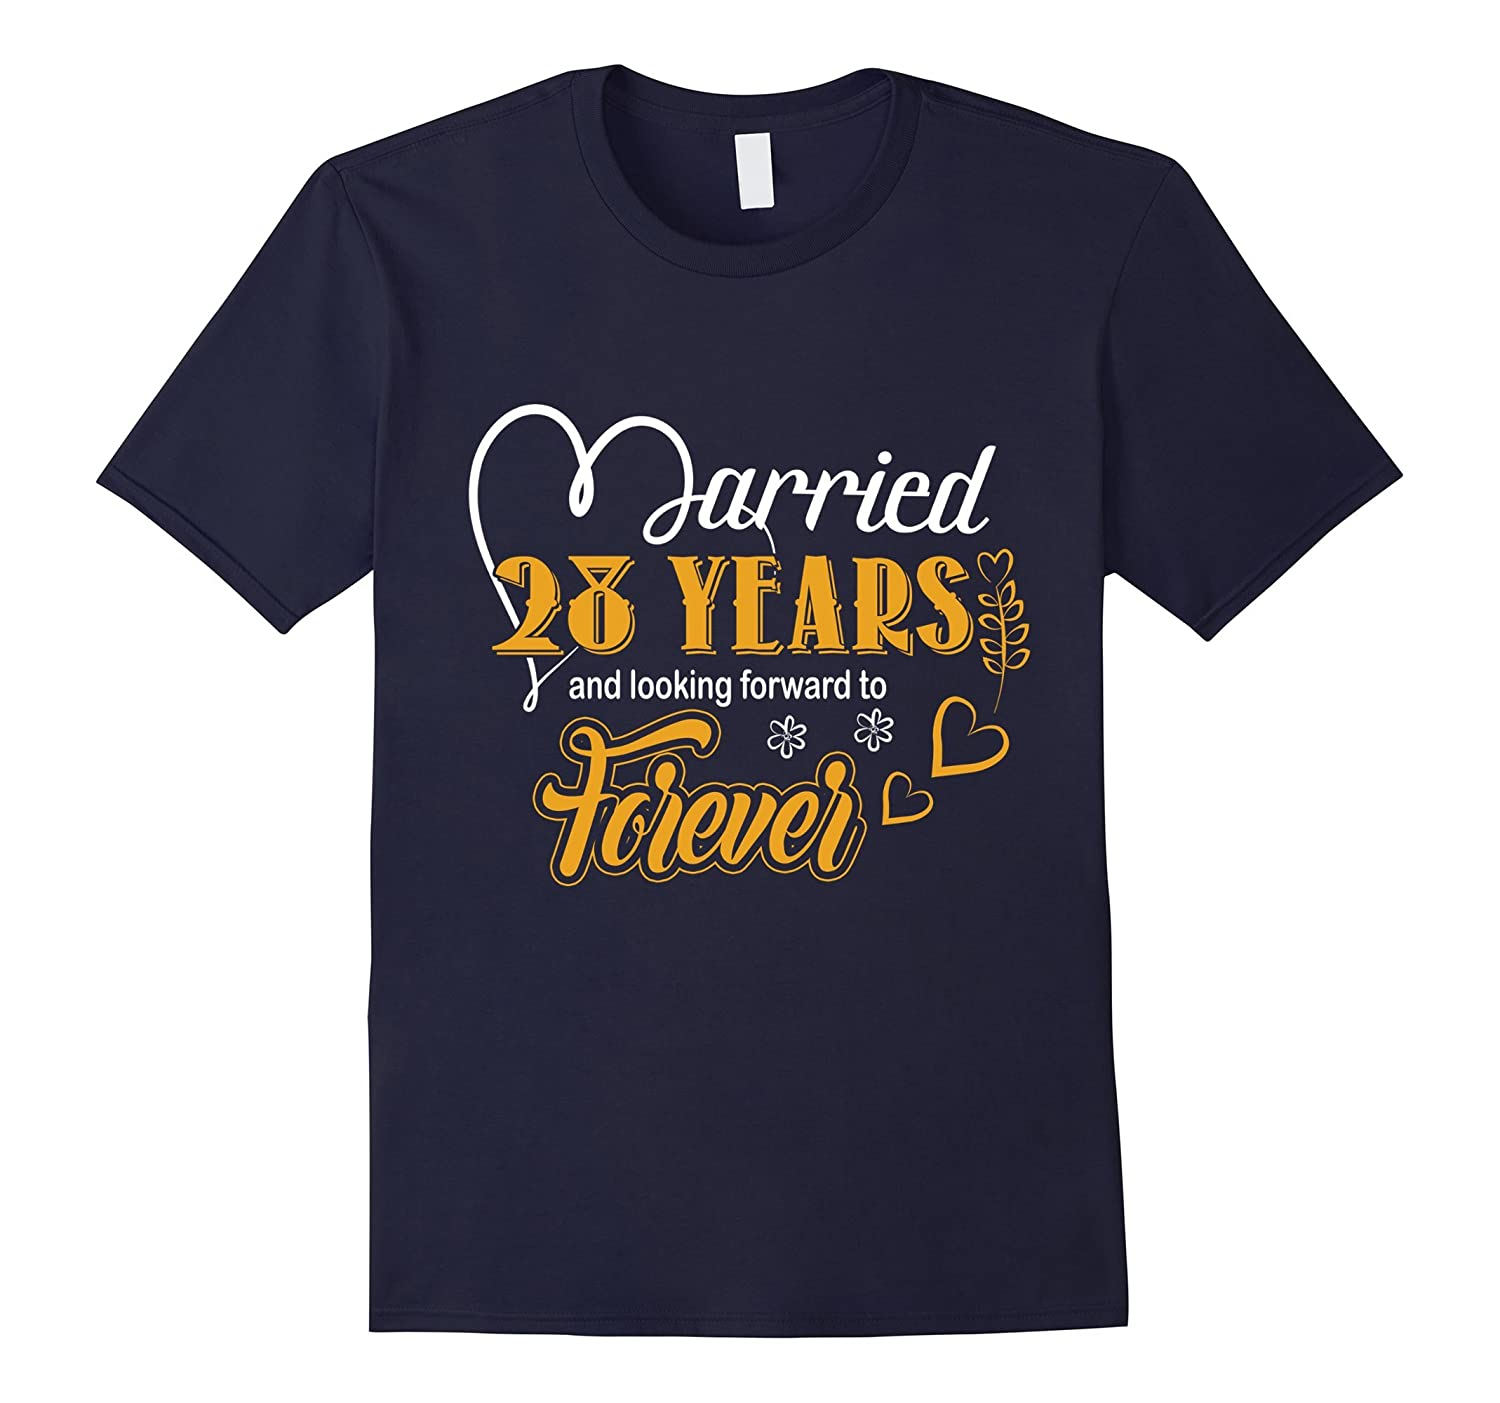 28th Wedding Anniversary Gift: 28th Wedding Anniversary Gift For Couple. Wife Husband